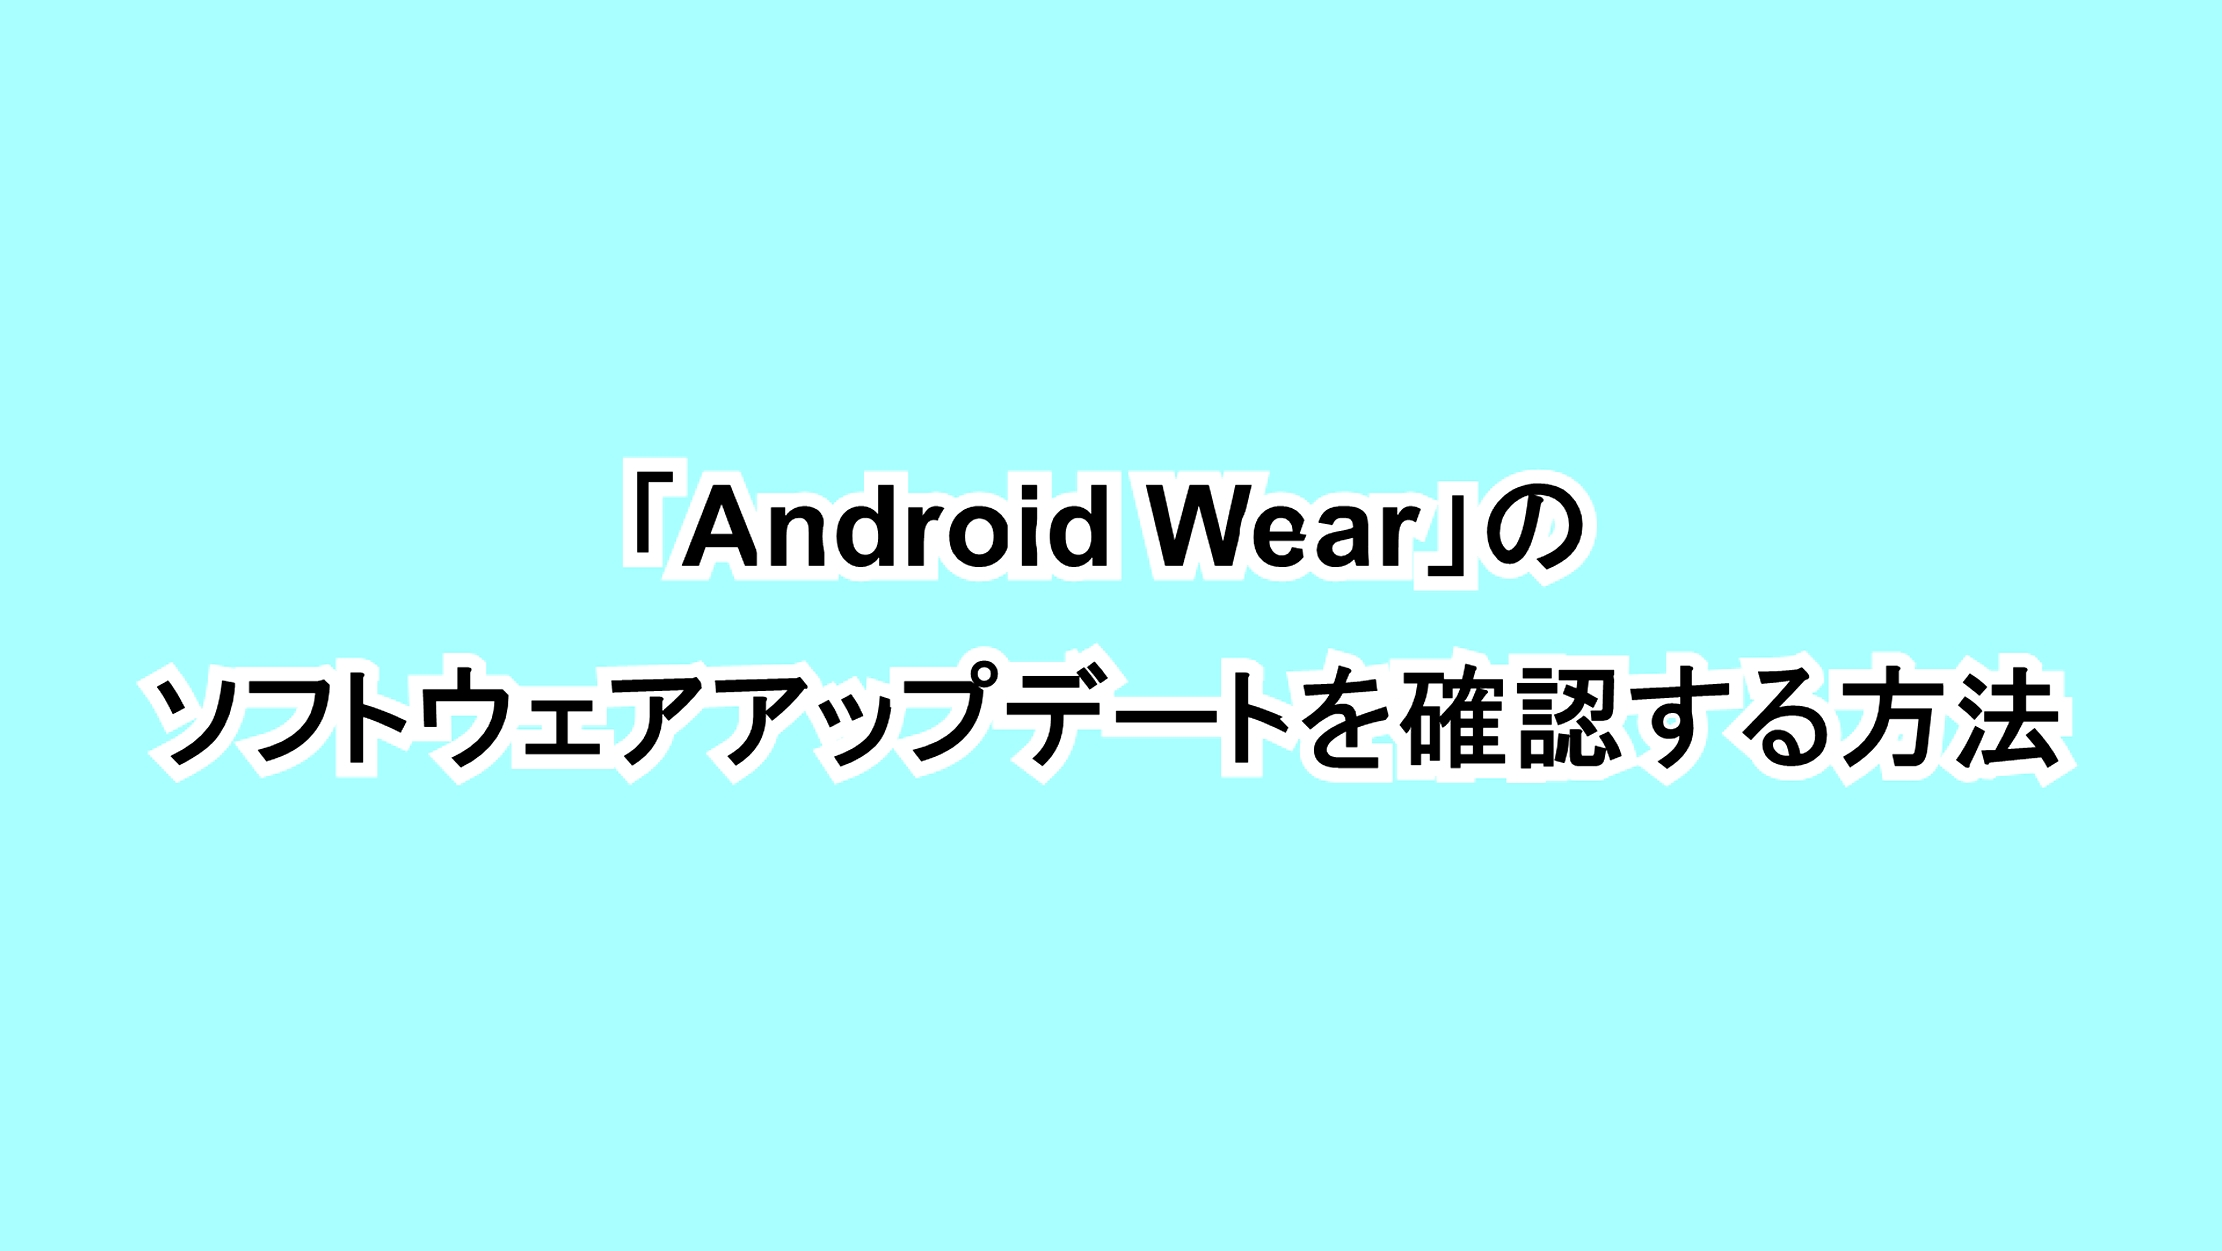 「Android Wear」のソフトウェアアップデートを確認する方法